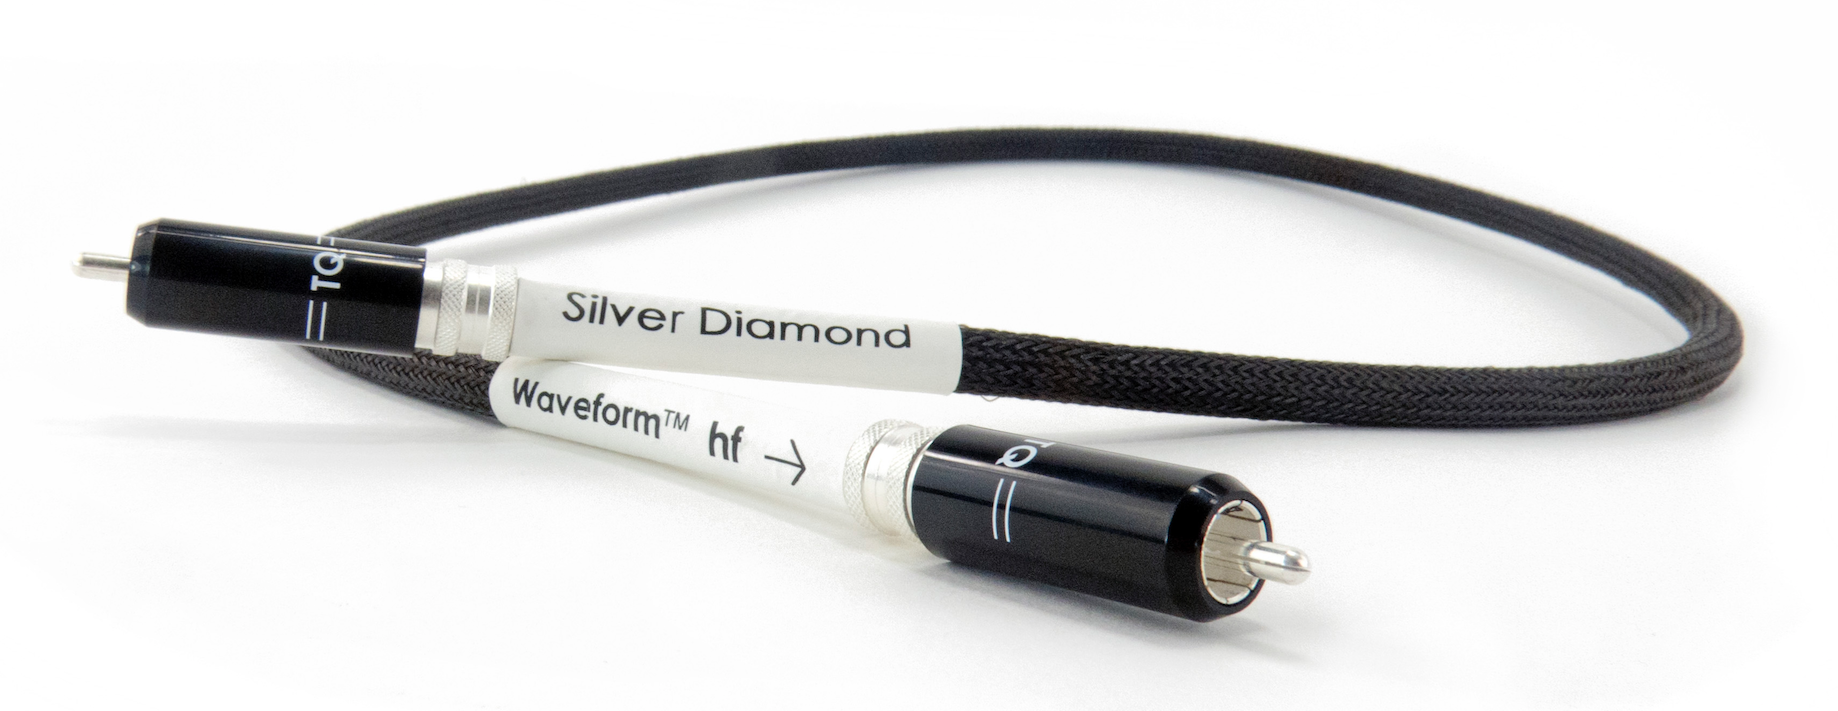 Tellurium Q's Silver Diamond Waveform hf Digital RCA